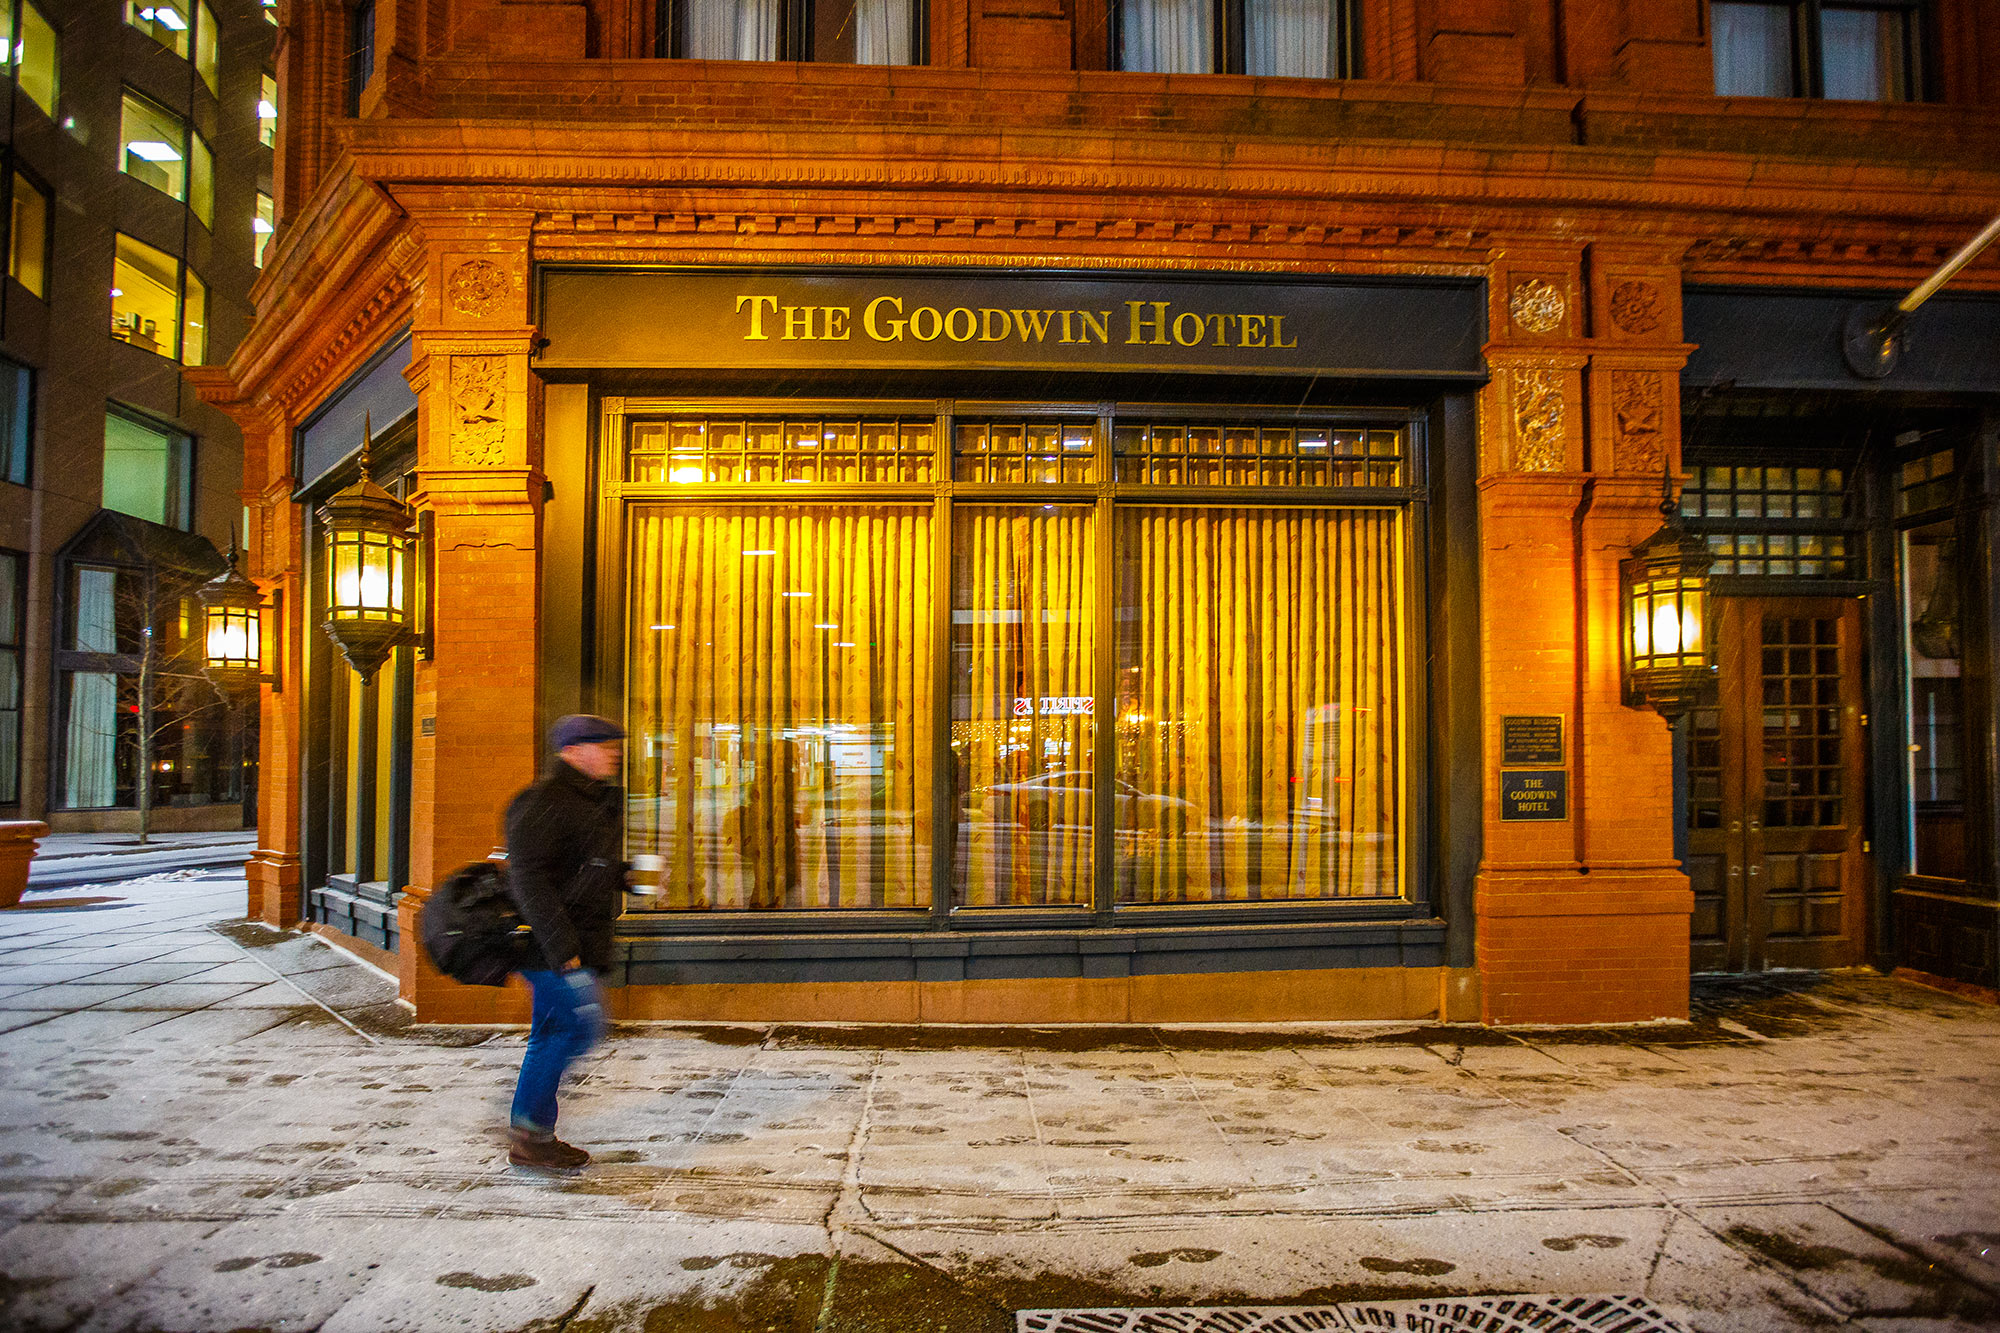 The Goodwin Hotel, Hartford, CT - 2/15/16